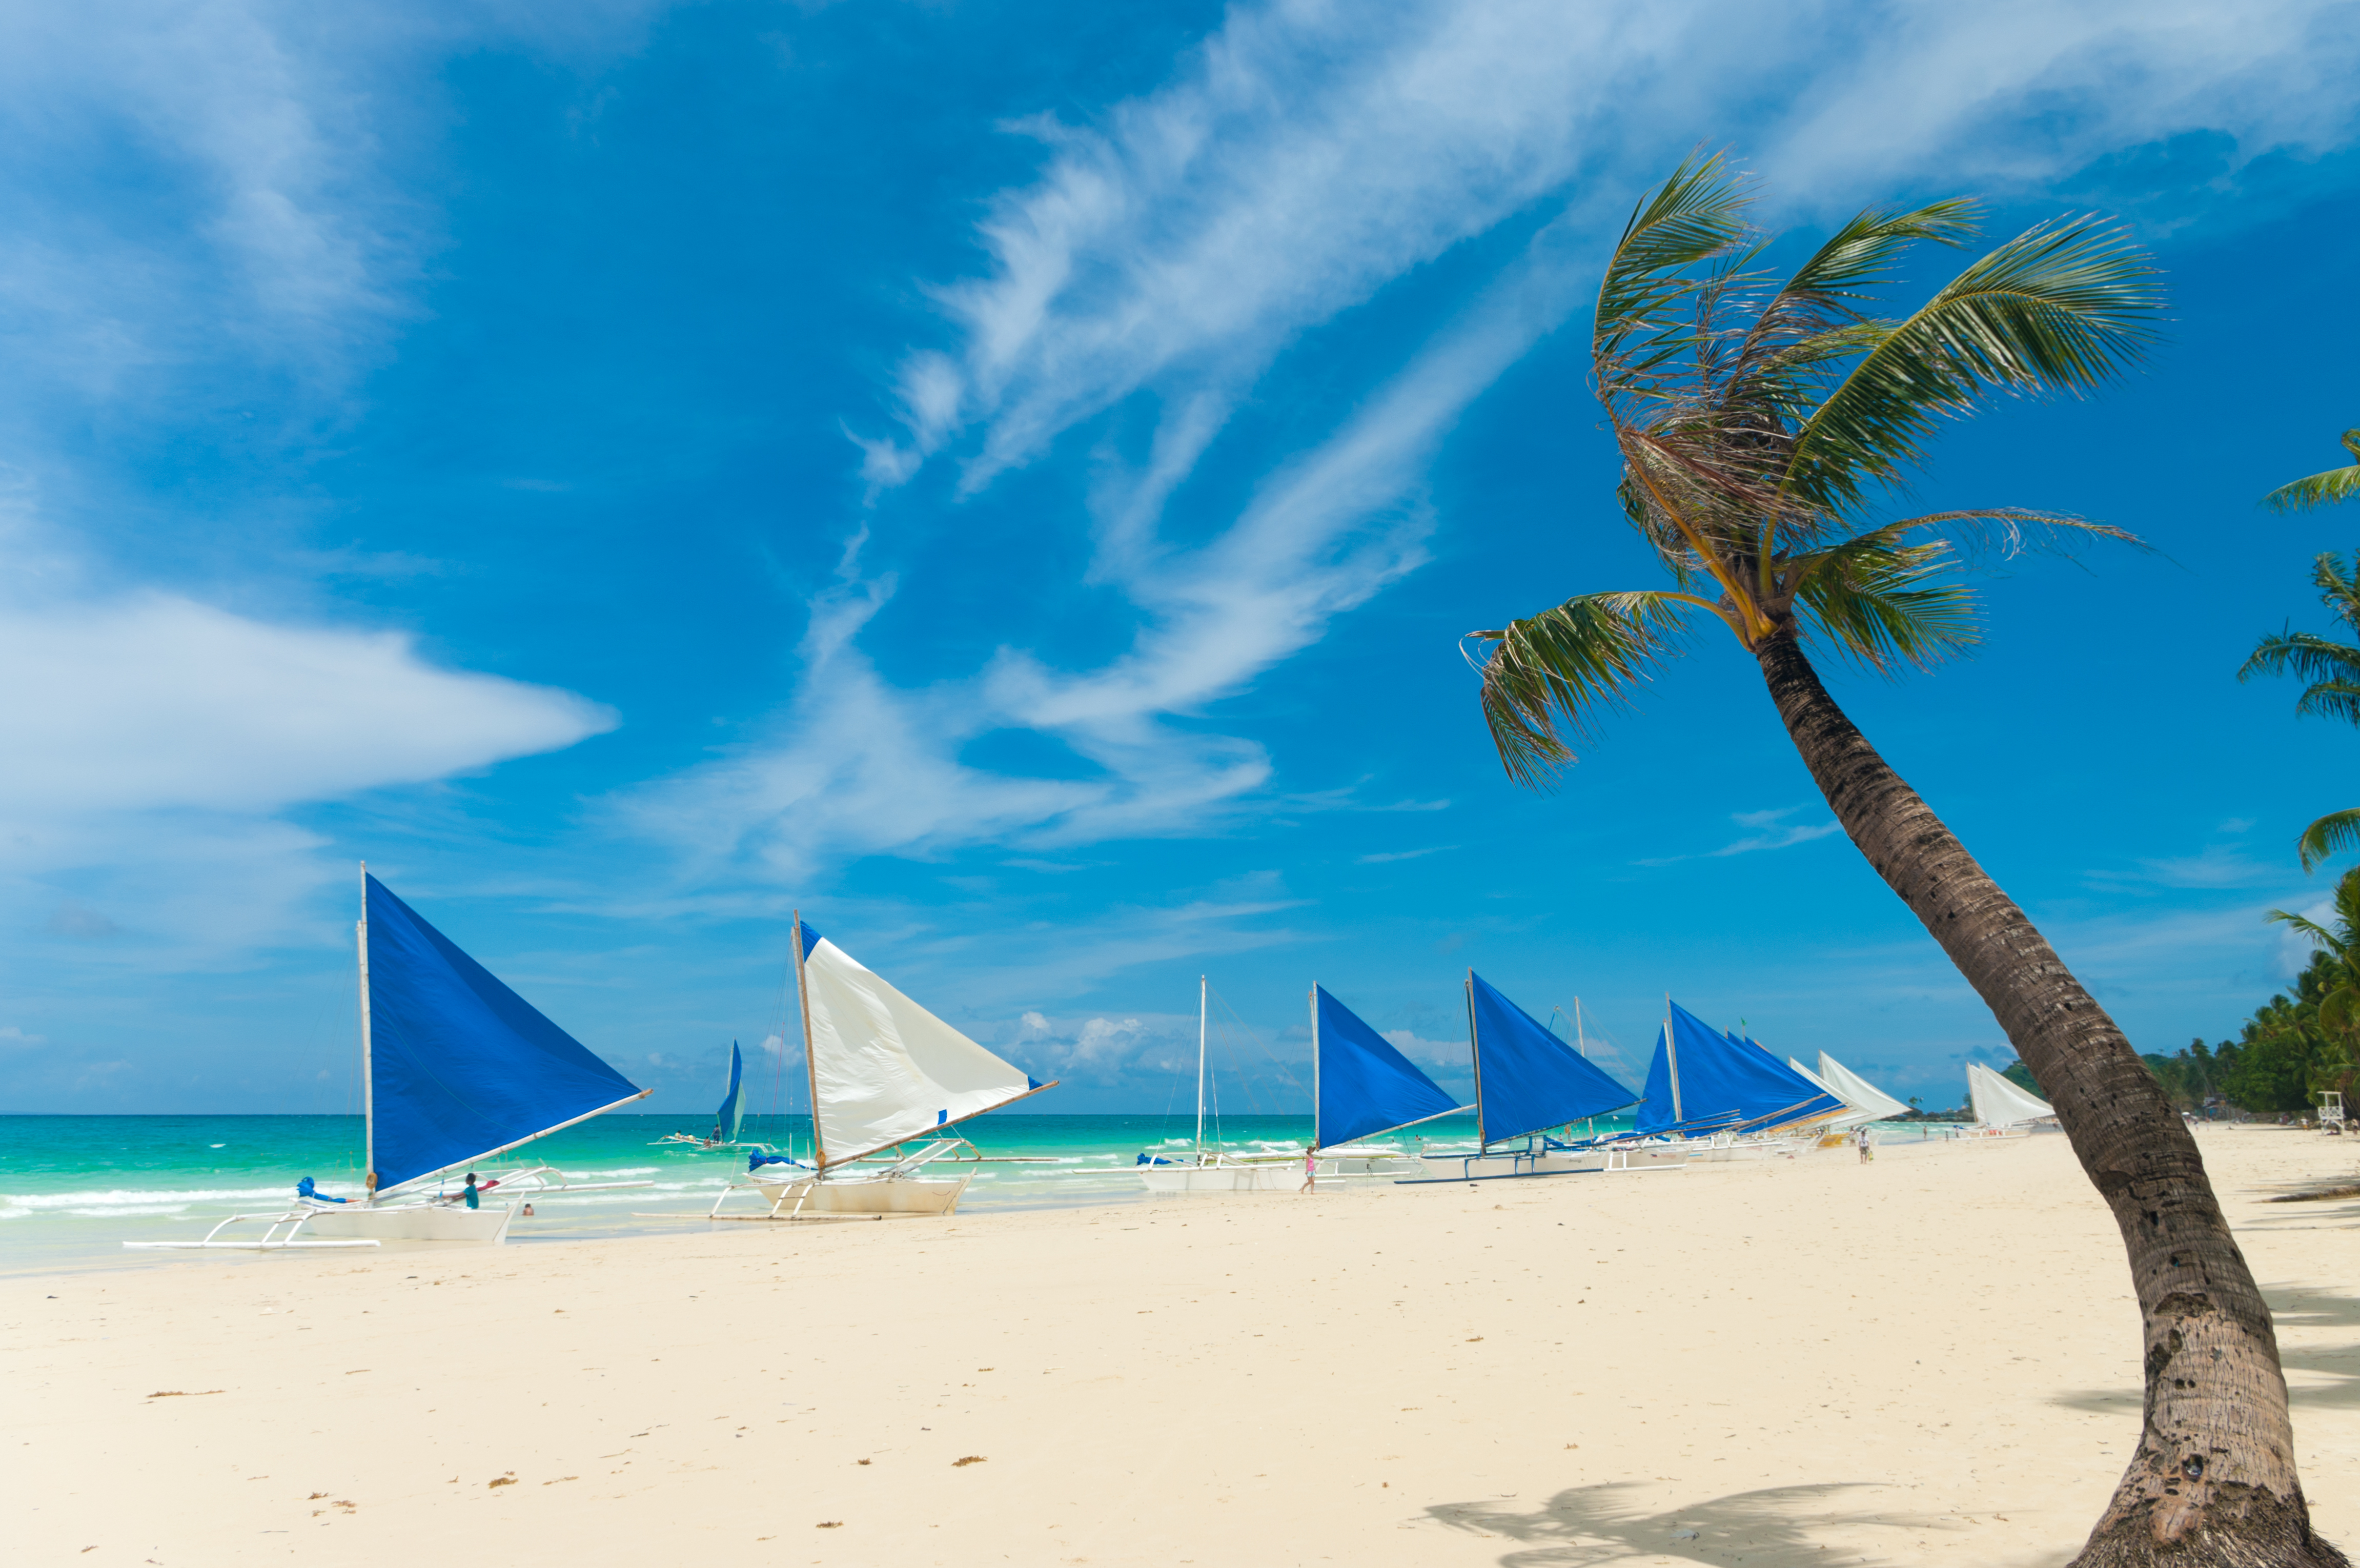 Package Deal to Boracay with Movenpick Resort and Spa & Philippine Airlines for 5 Days & 4 Nights - day 5